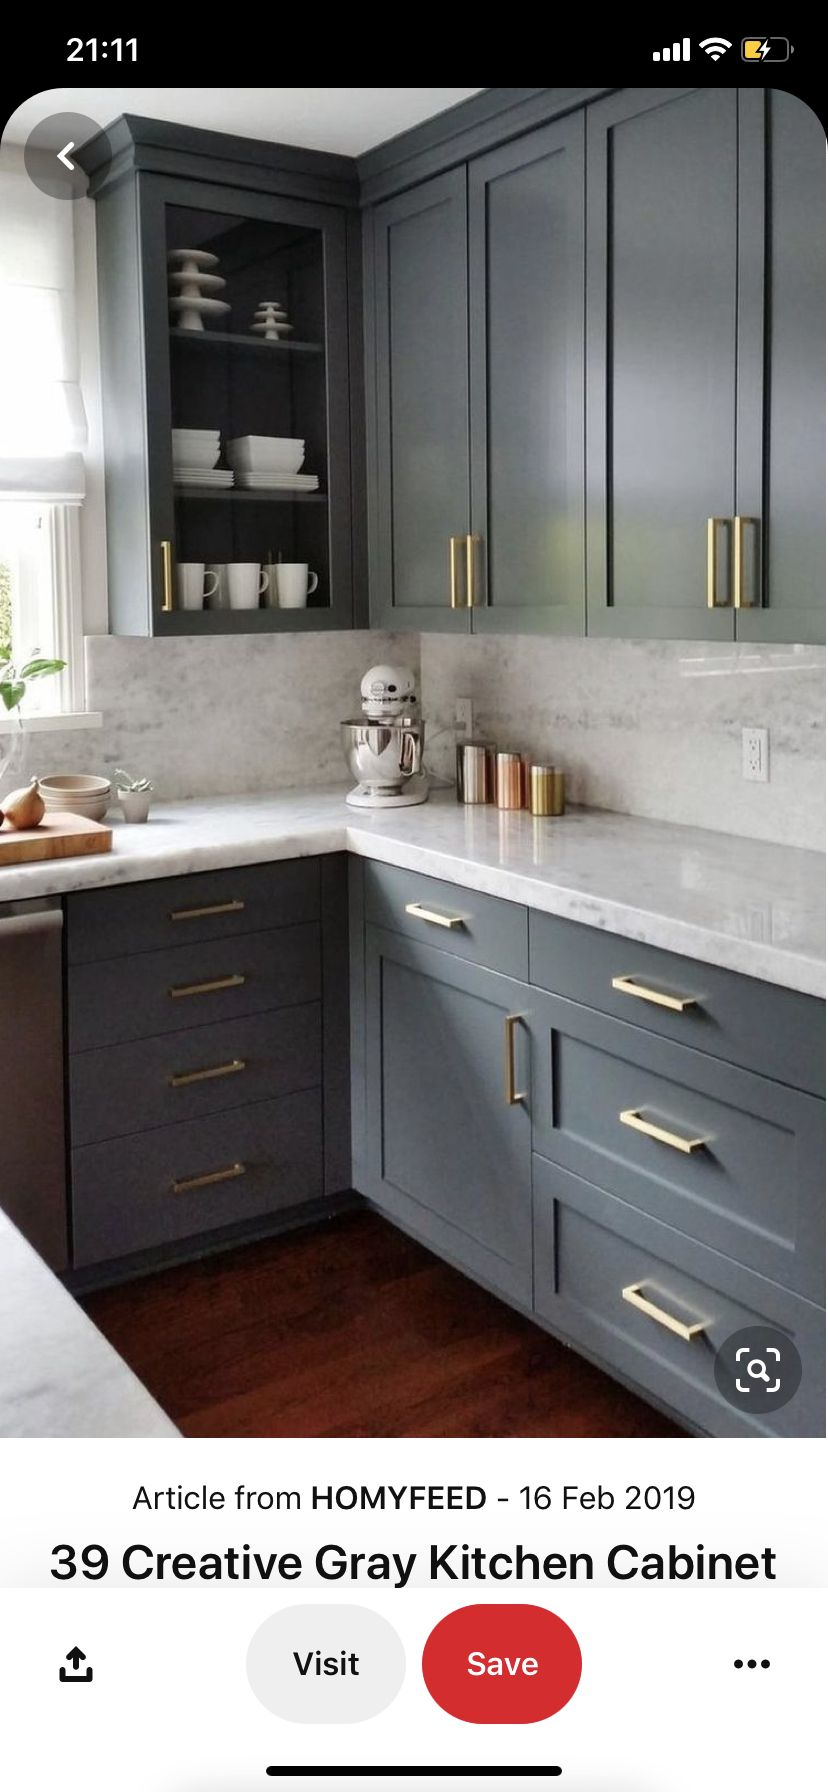 Pin By Linda Hicks On Mutfak In 2020 Cheap Kitchen Cabinets Grey Kitchen Cabinets Kitchen Redecorating